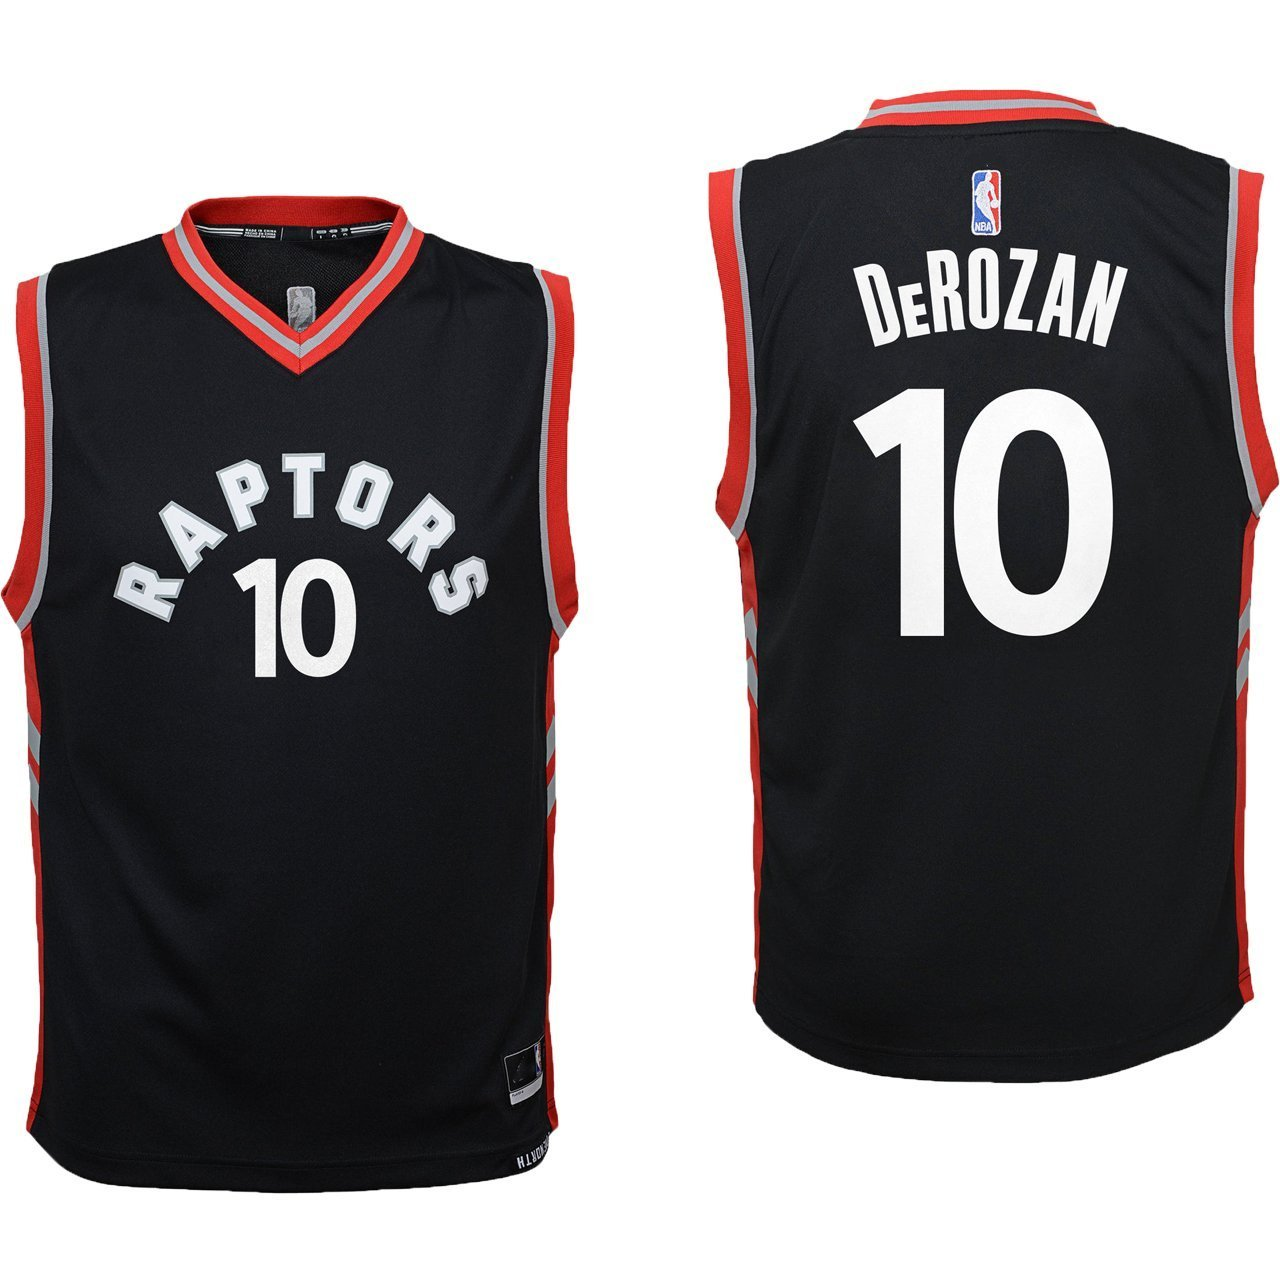 6ba17ecb086 Amazon.com   Outerstuff DeMar DeRozan Toronto Raptors  10 Black Youth  Alterante Replica Jersey   Sports   Outdoors